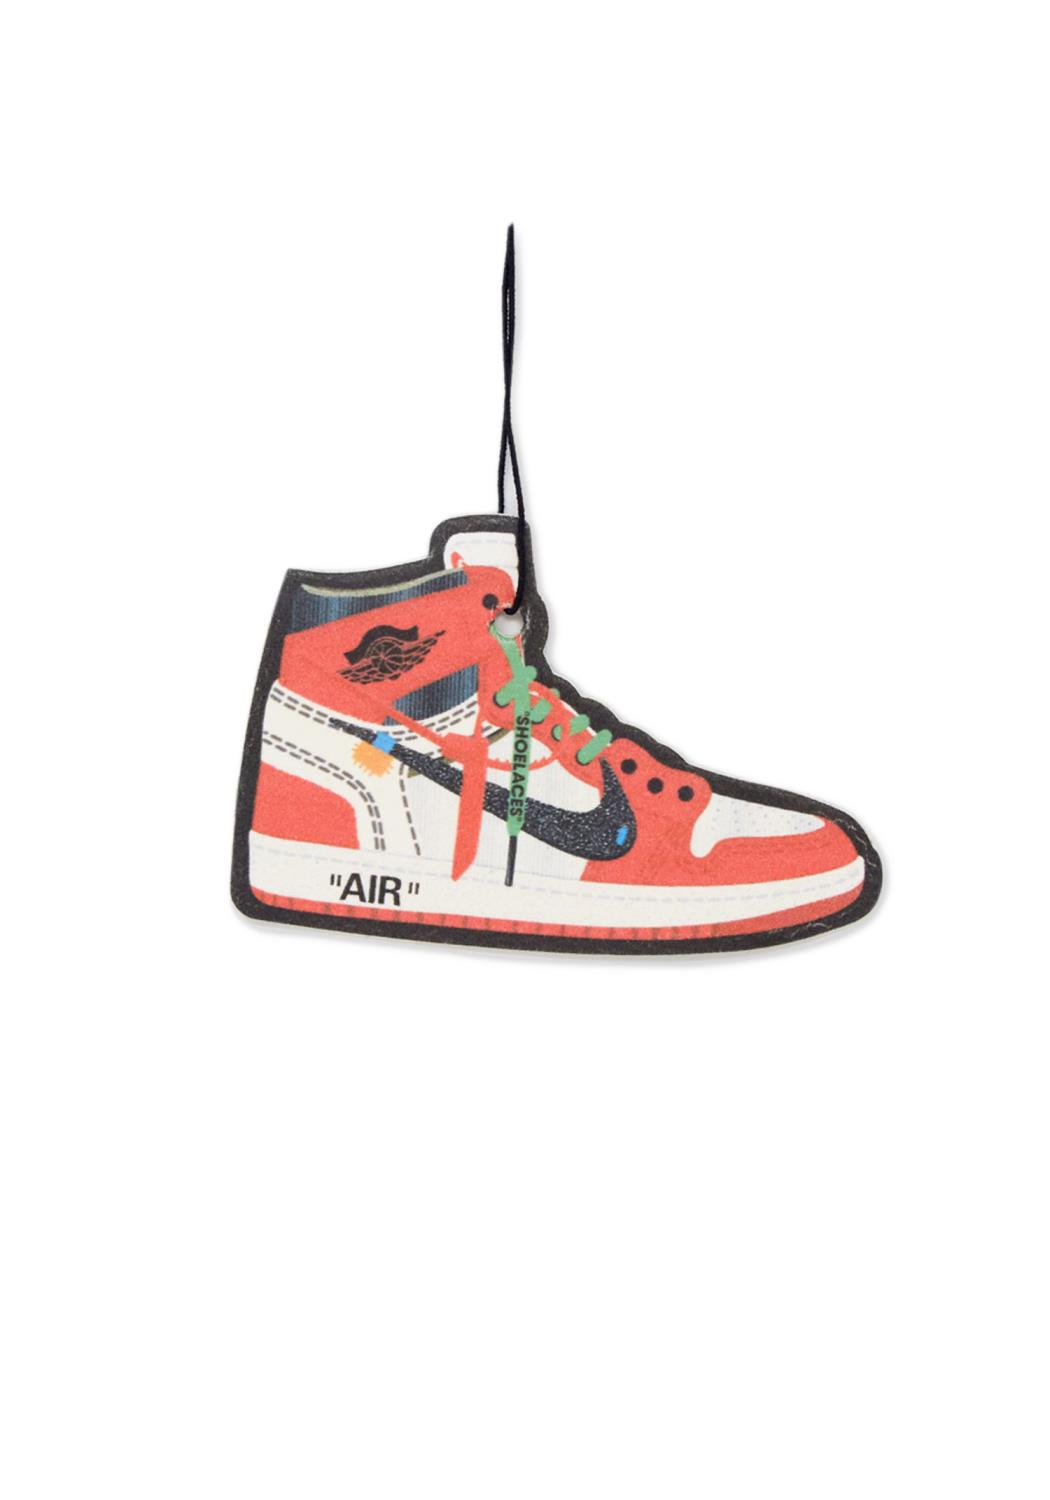 SOLD INT- Off White Red AJ 1 Air Freshener